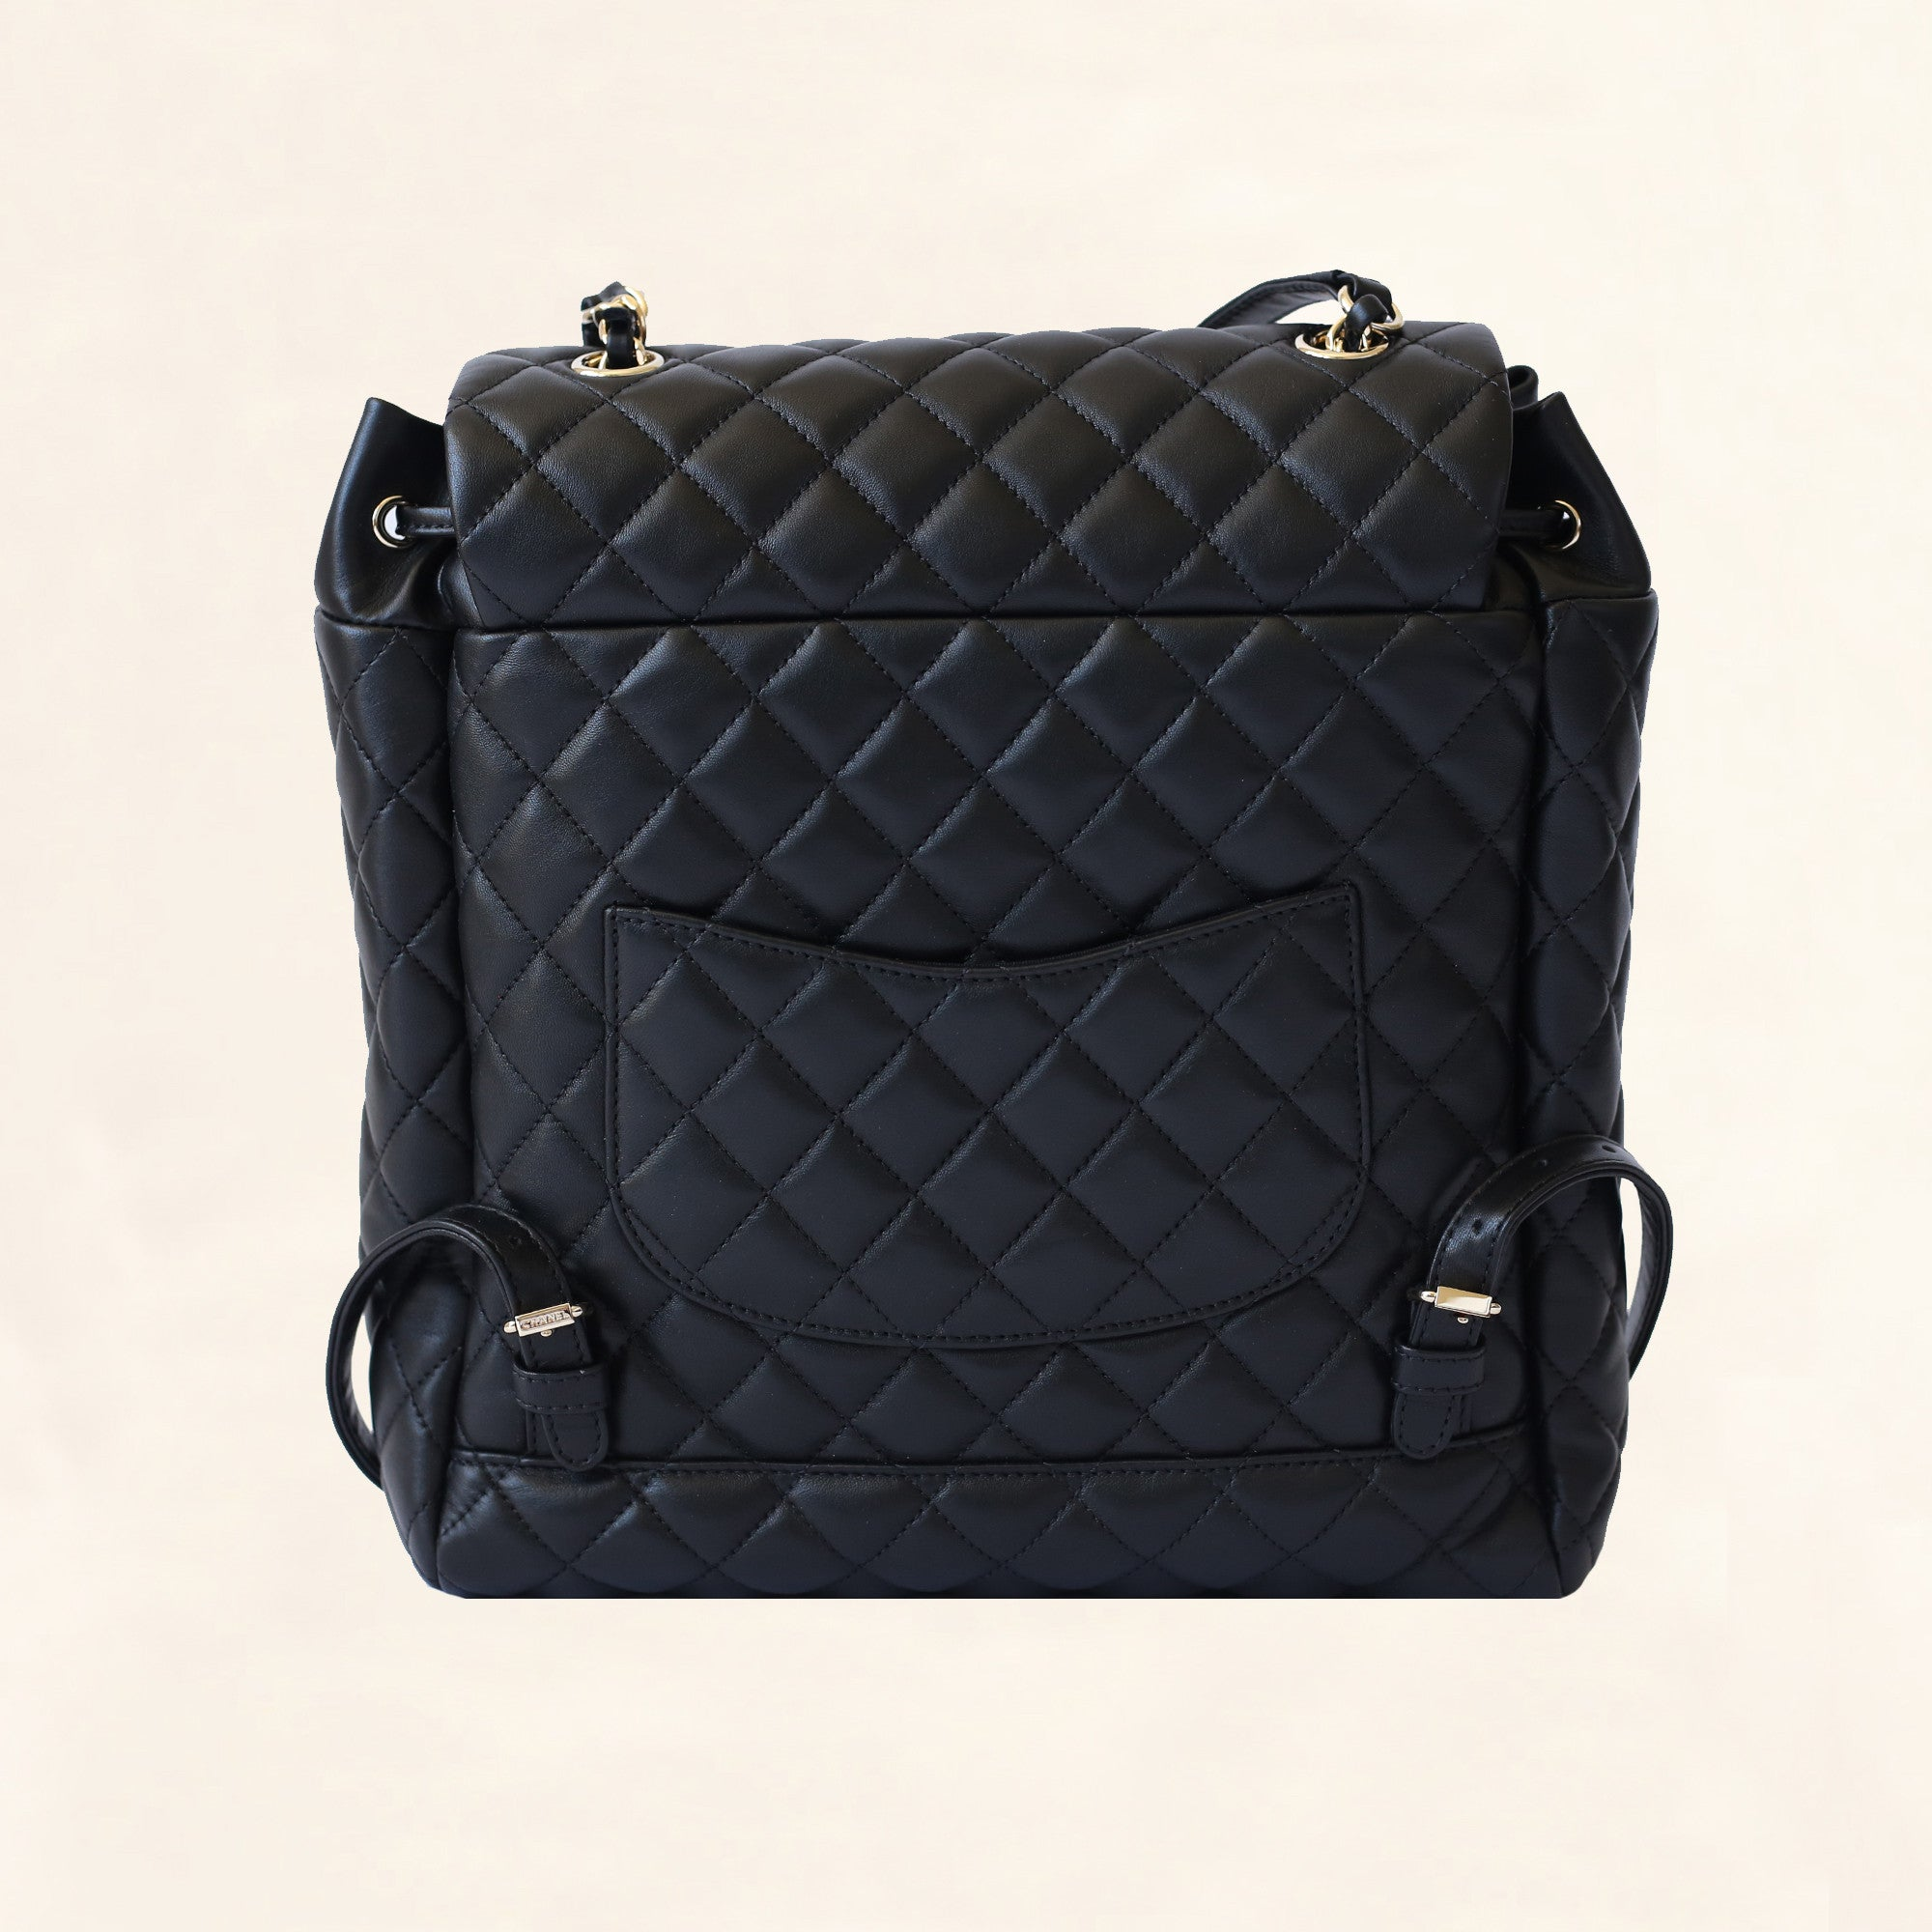 5cd3001ed068 Chanel | Quilted Lambskin Urban Spirit Backpack GHW | Large - The-Collectory